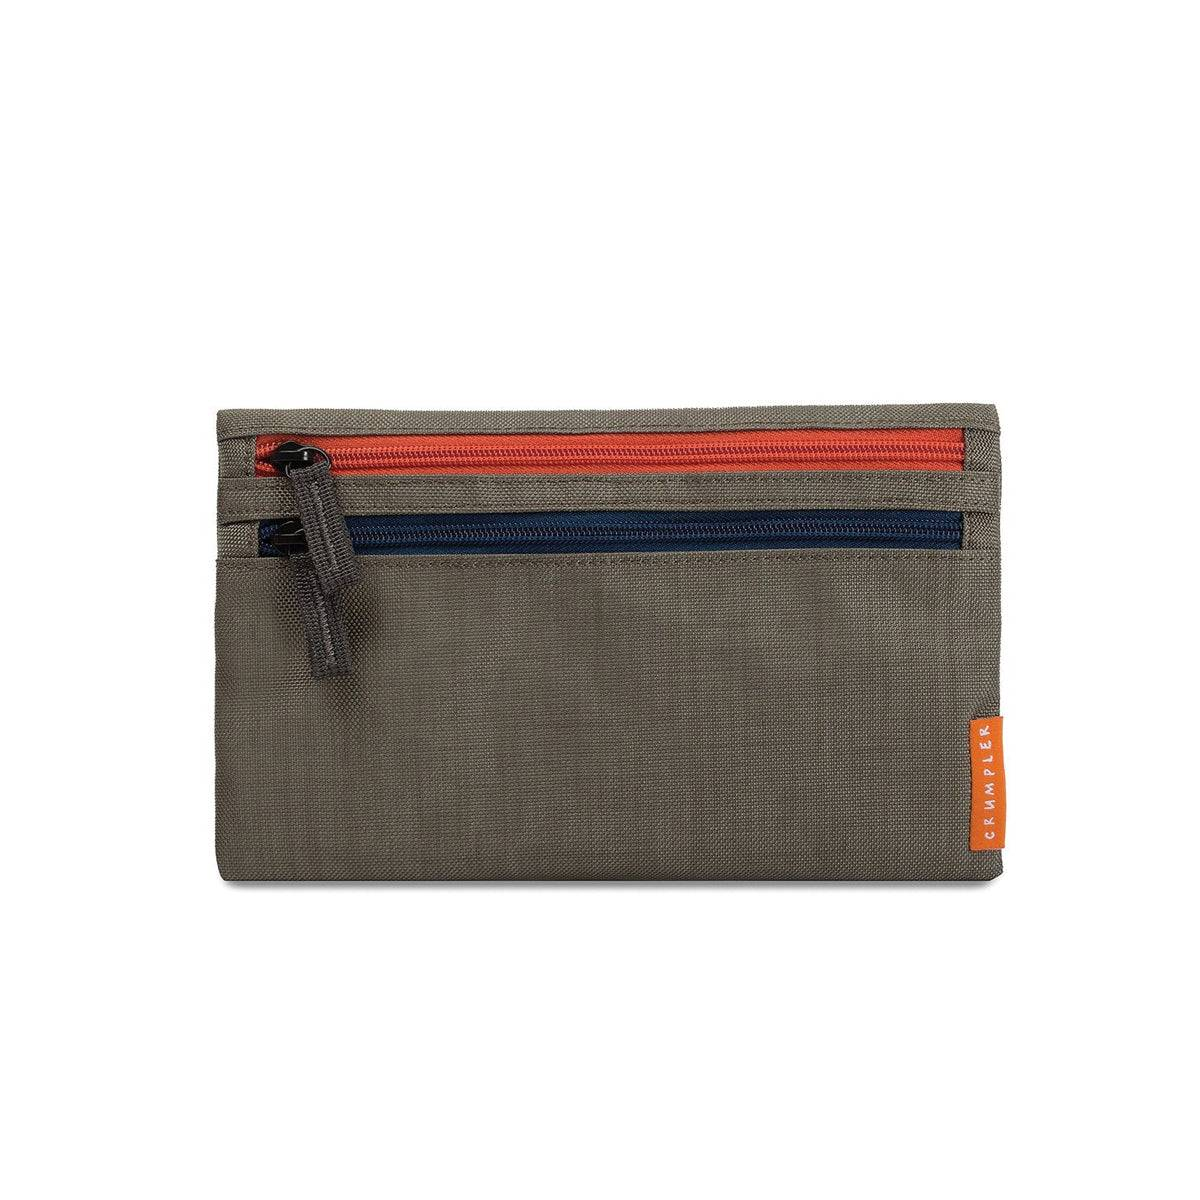 Crumpler Zippie Travel Pouch Travel organizer golden weed / tangerine